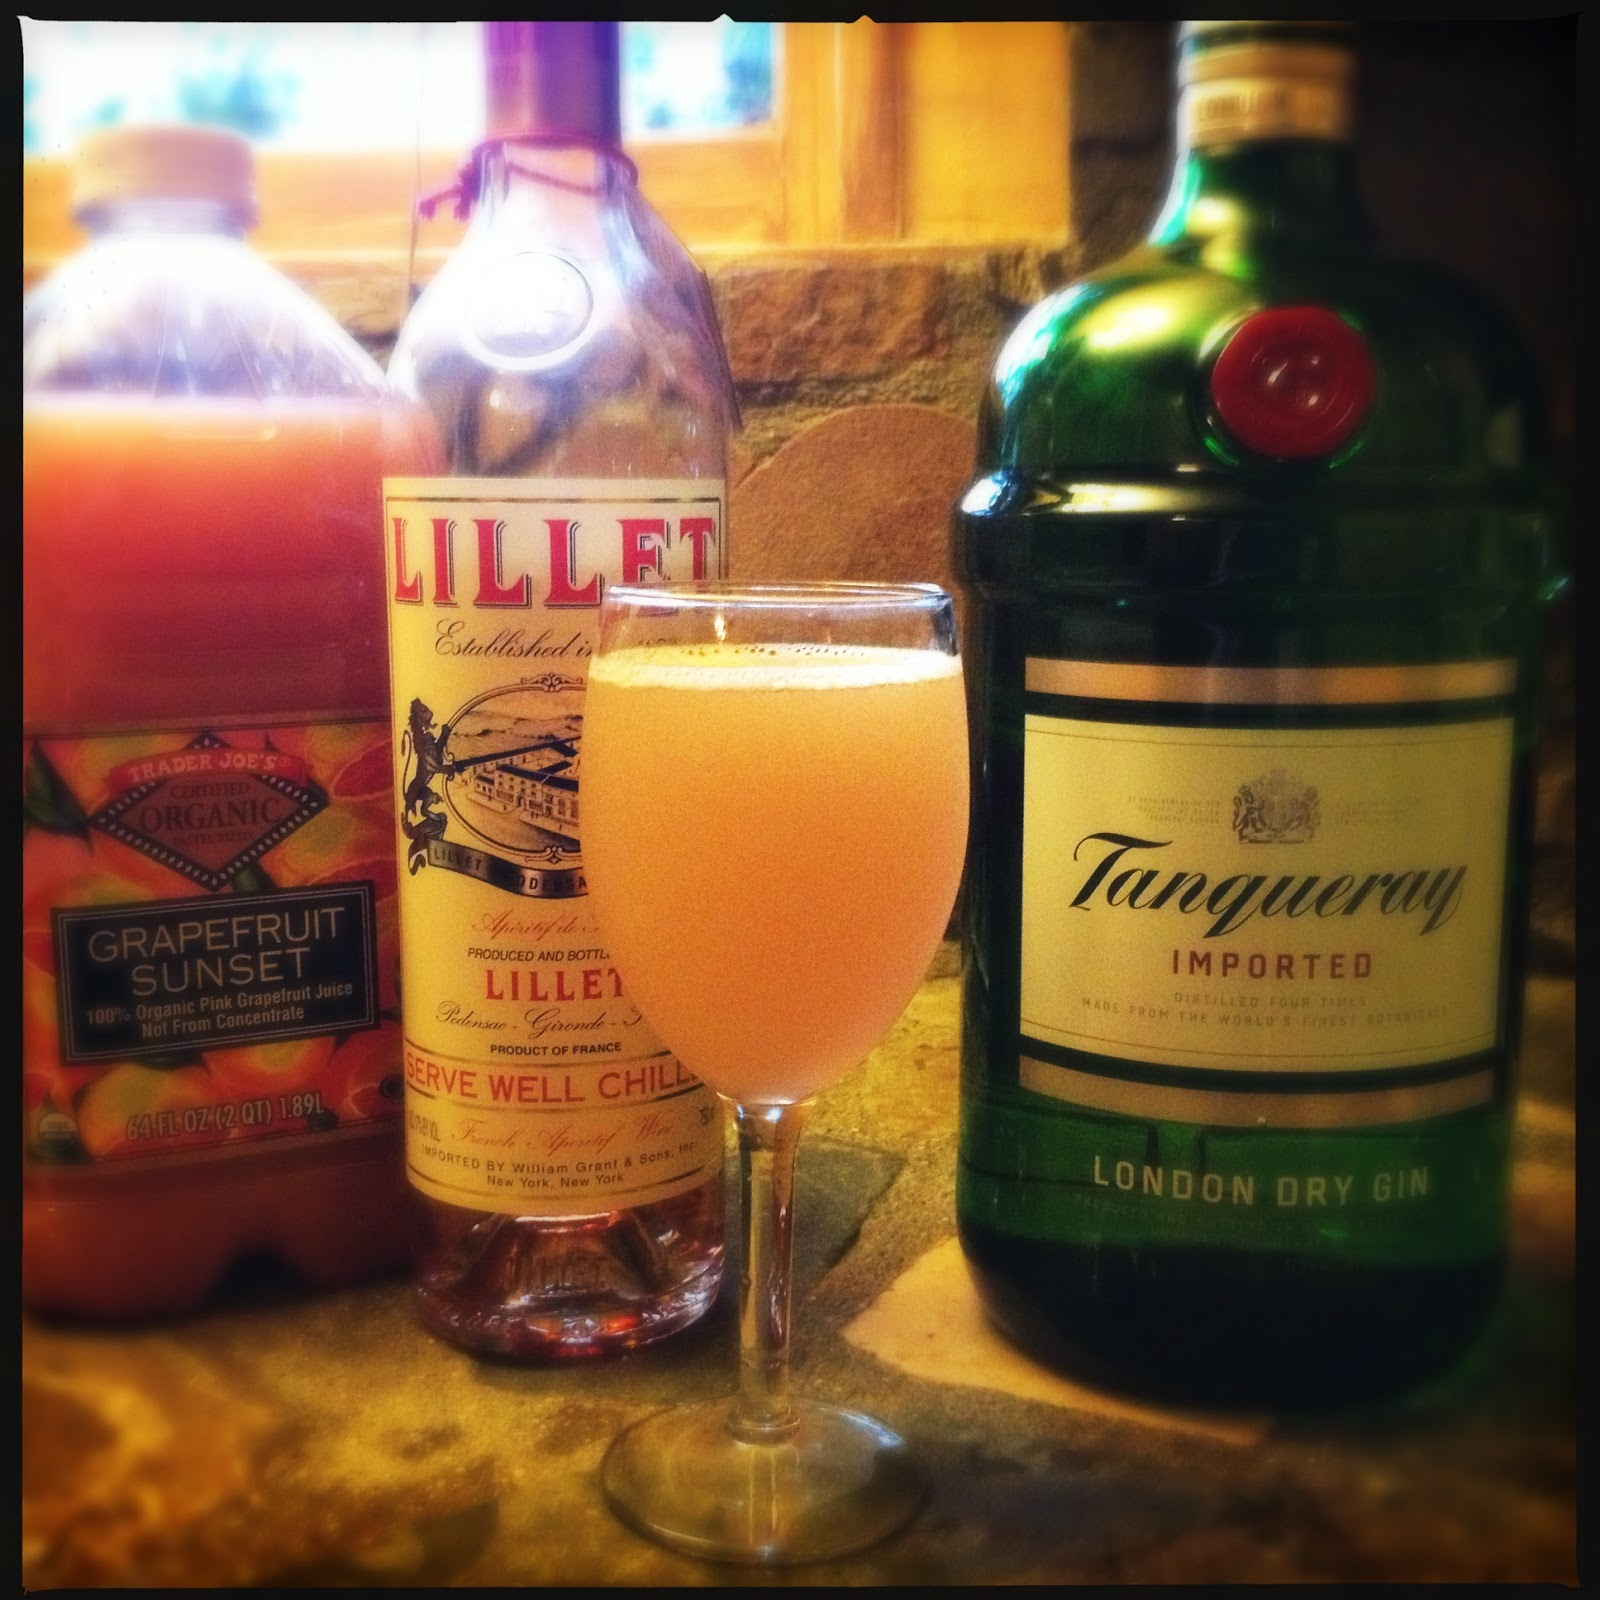 lillet rosé spring cocktail ingredients 2 oz lillet rosé 2